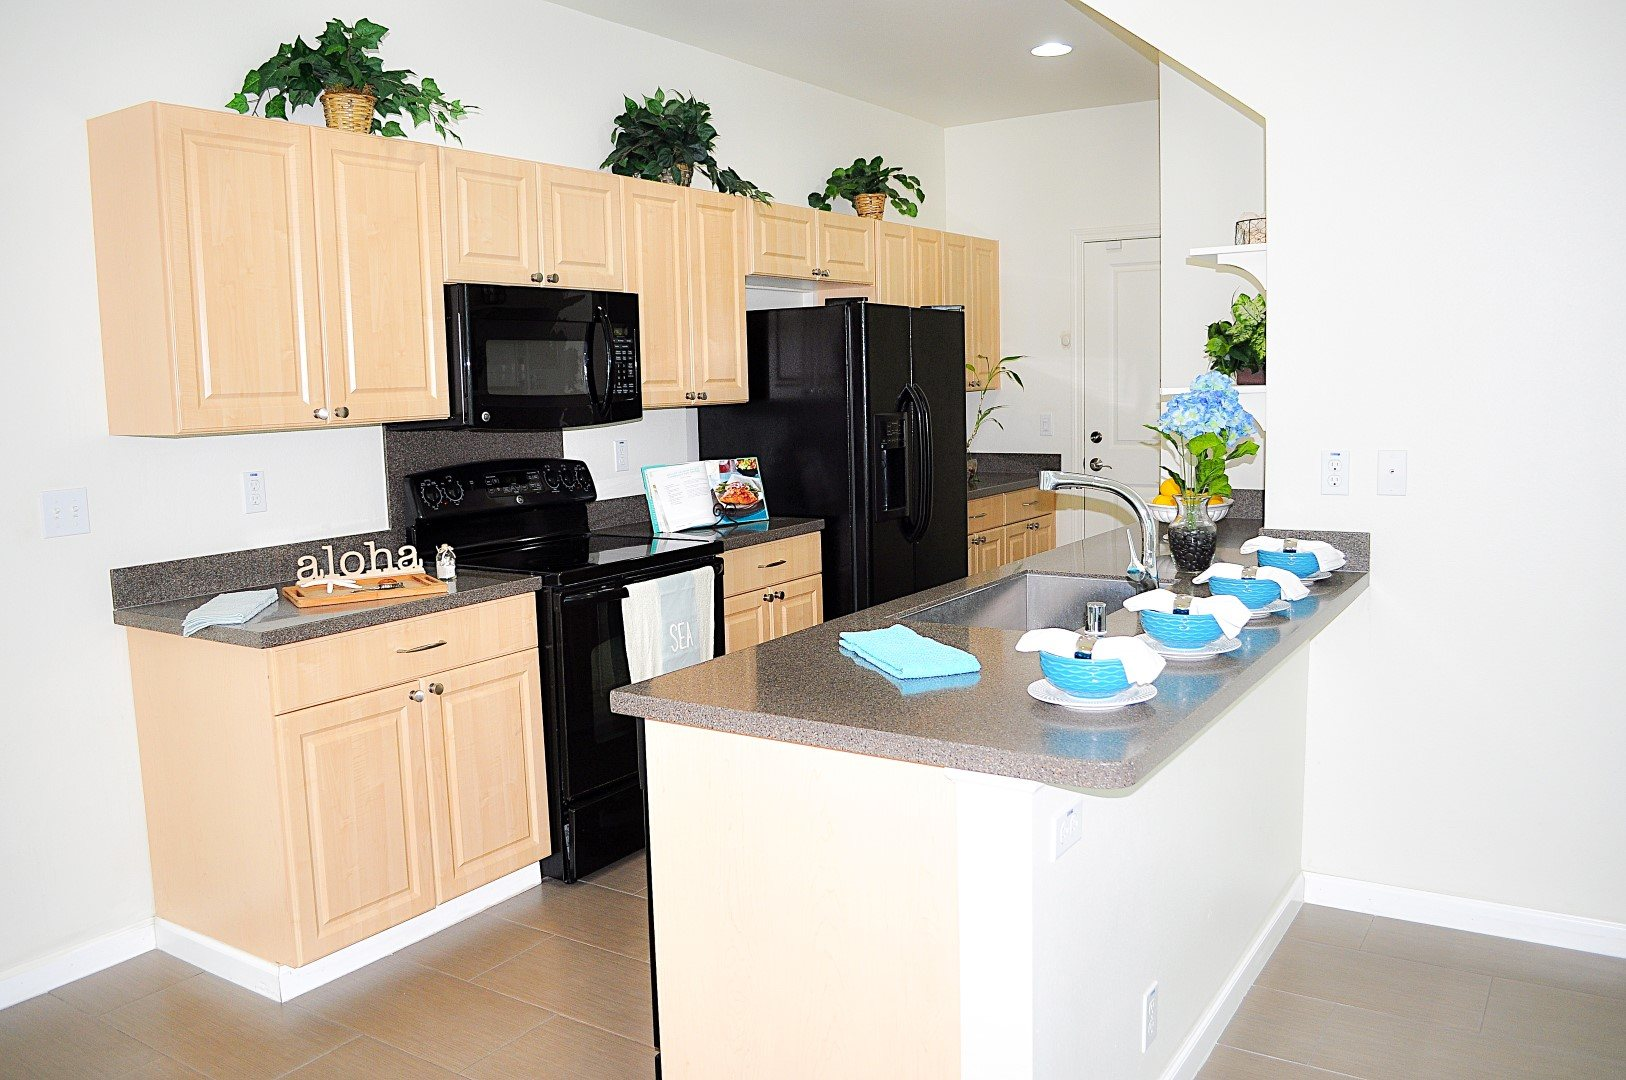 New Listing In Ewa By Gentry Laulani Trades Hawaii Real Estate -  kitchen sink and cabinet oversized